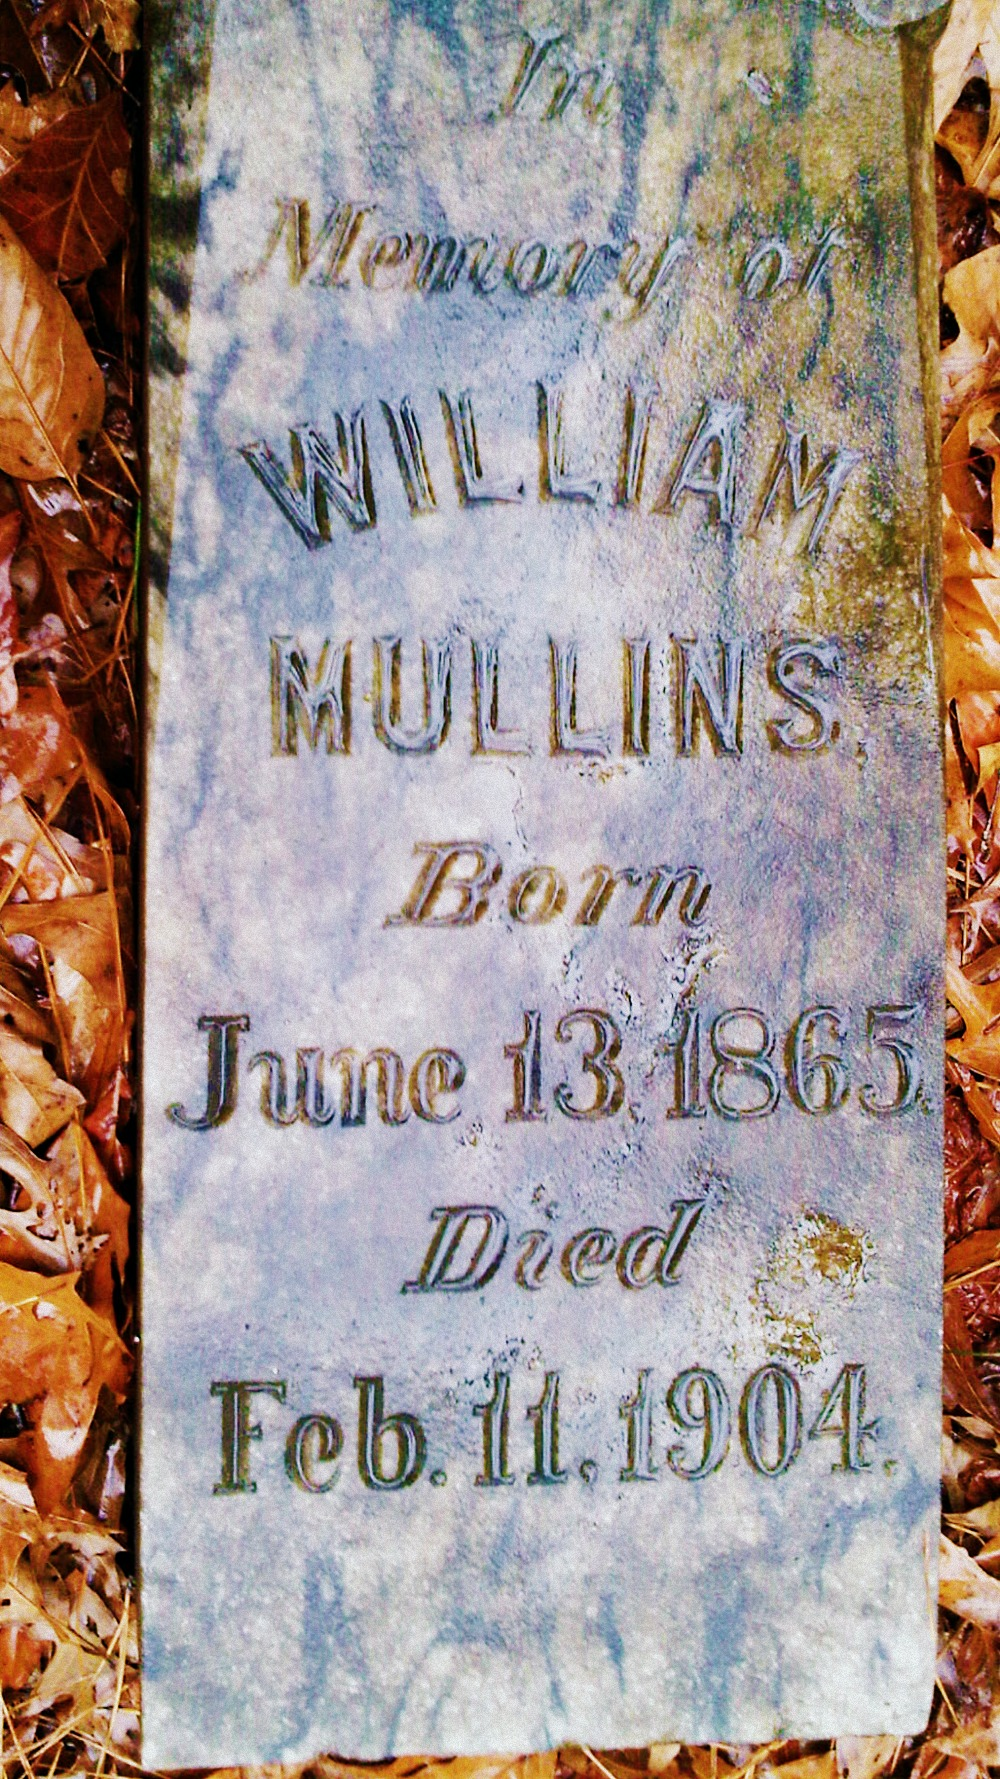 William Mullins-Mullins Cemetery, Meriwether County, Ga